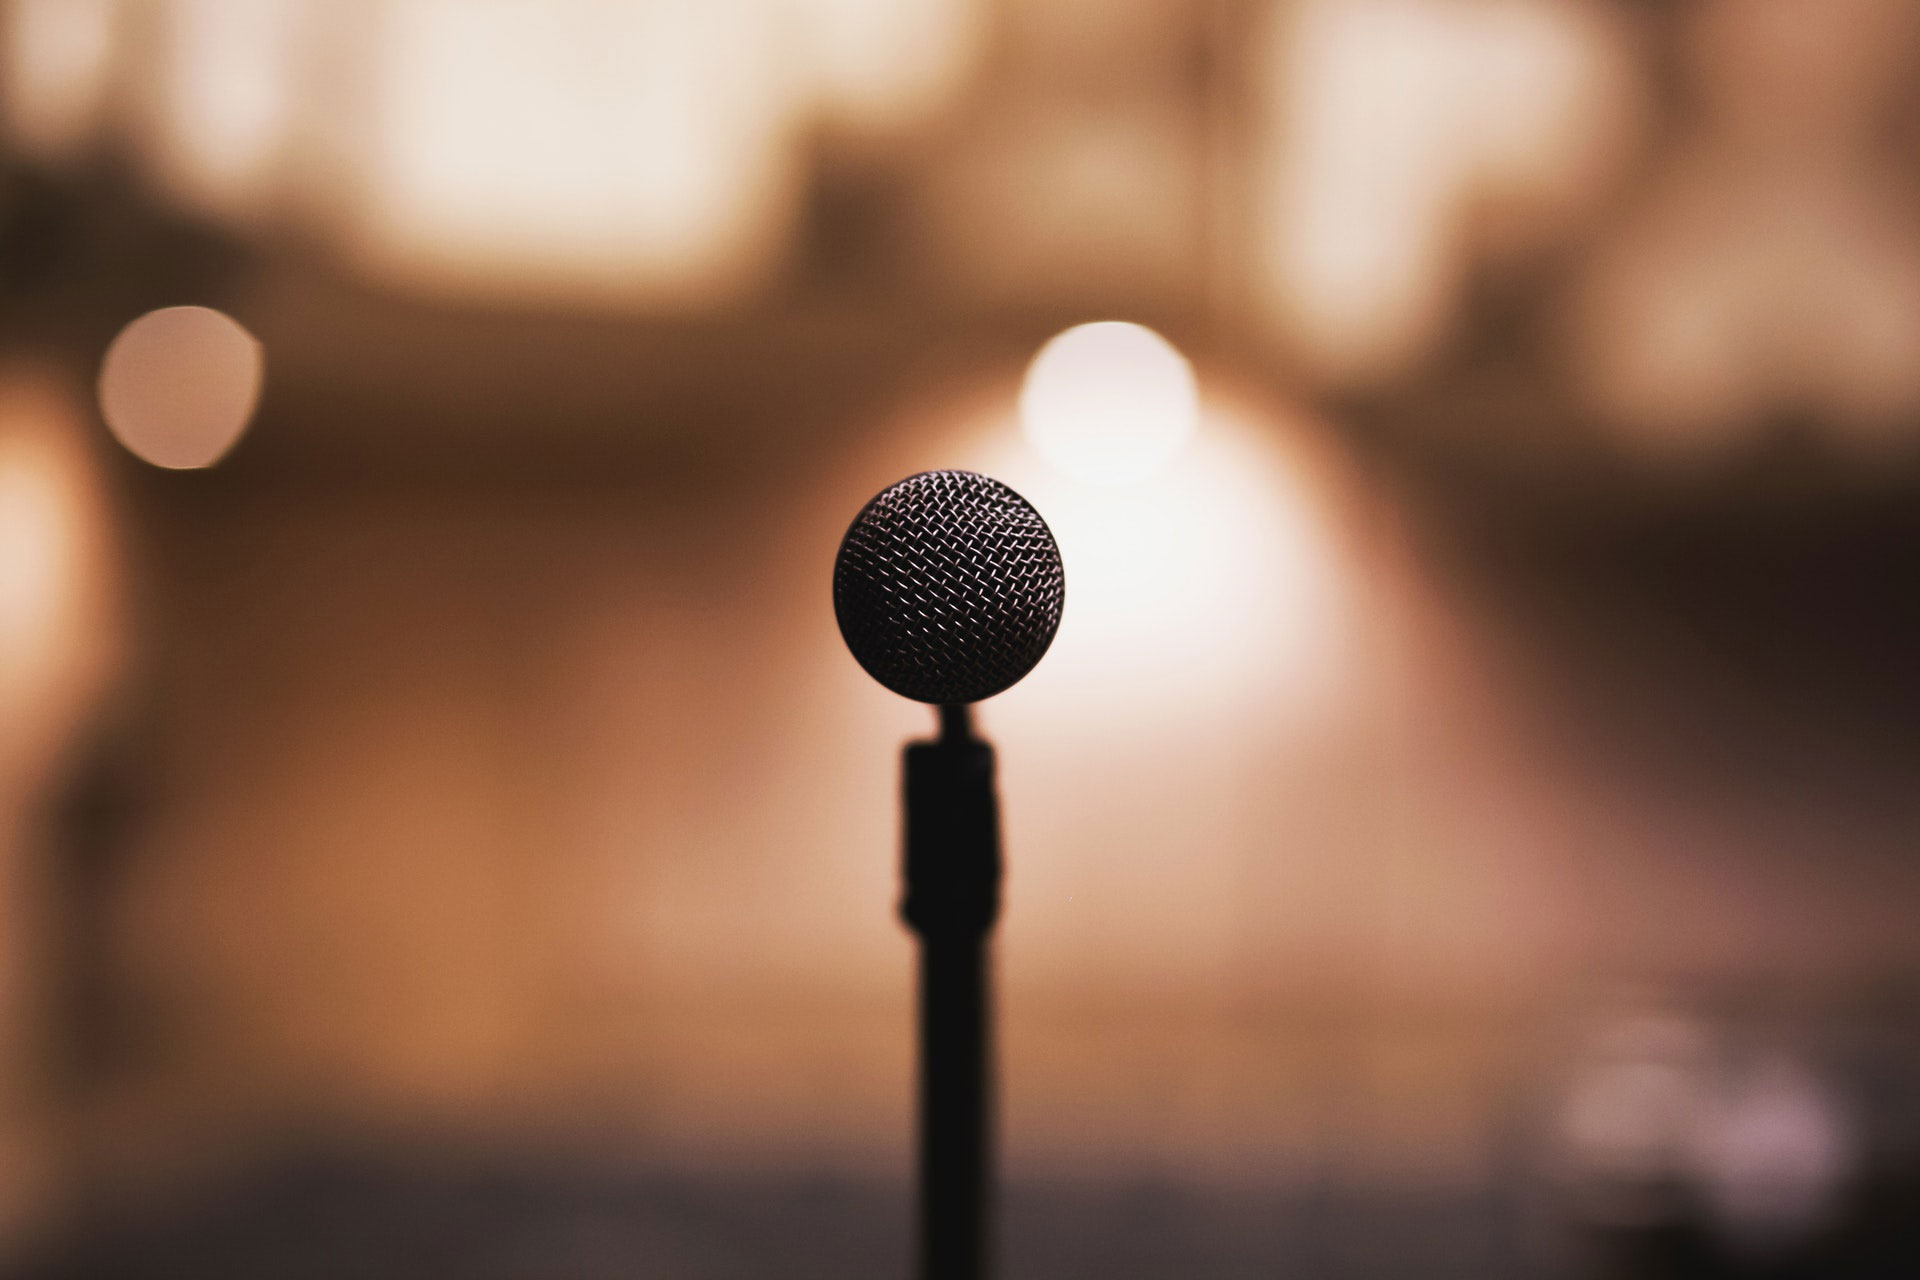 SPEAKING ABOUT -